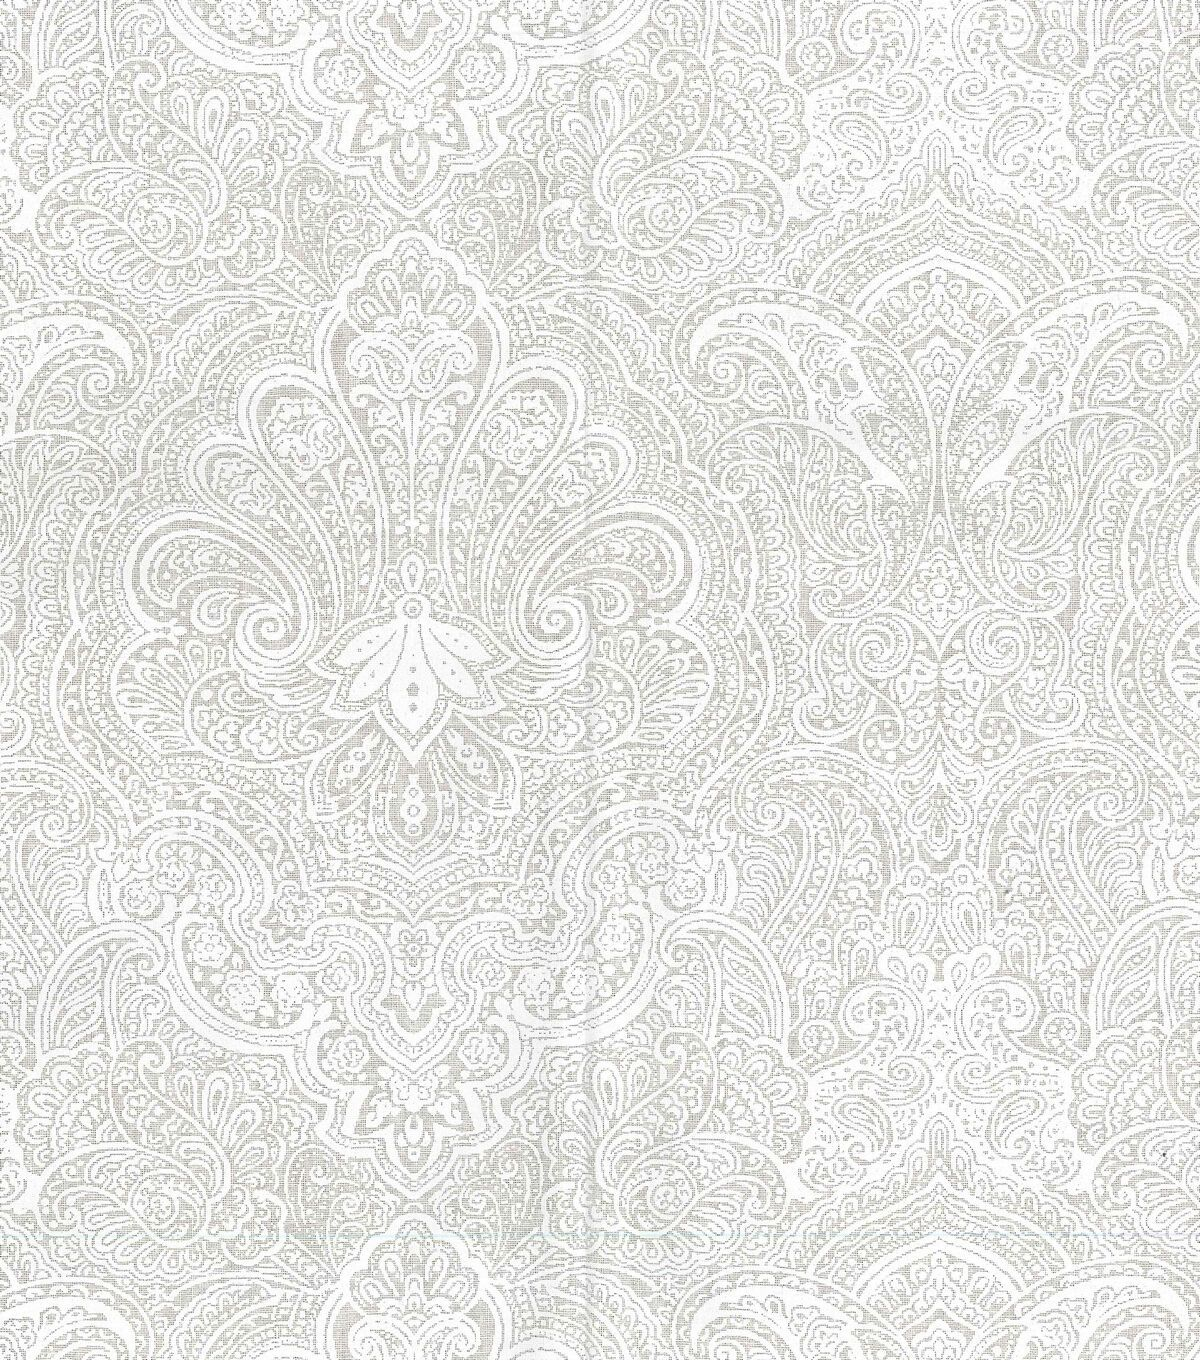 Keepsake Calico Cotton Fabric Large Paisley On White In